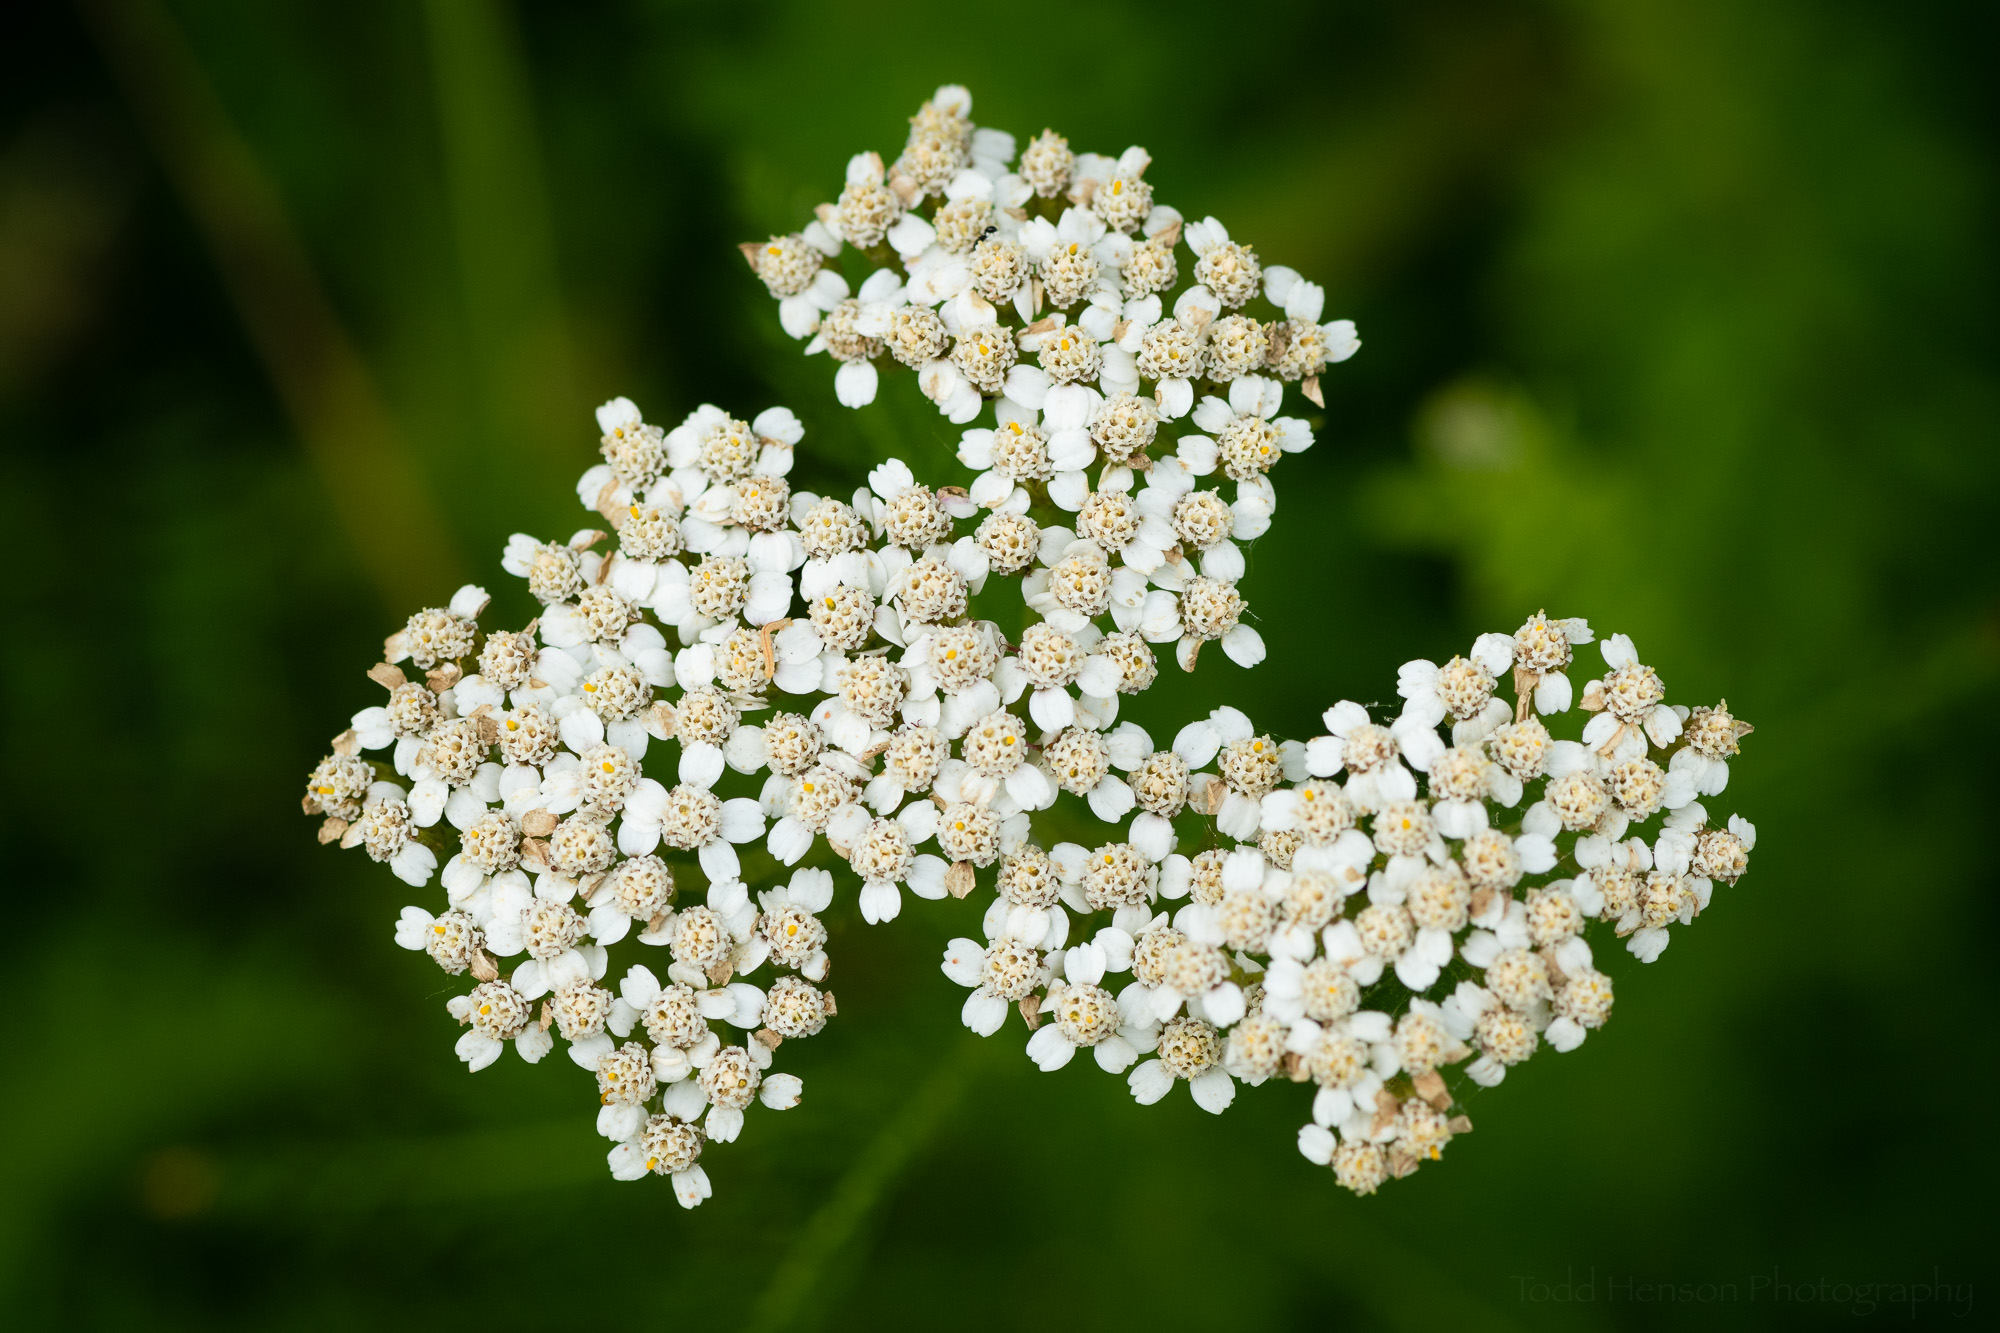 Common Yarrow, Occoquan Bay National Wildlife Refuge, Early June 2019